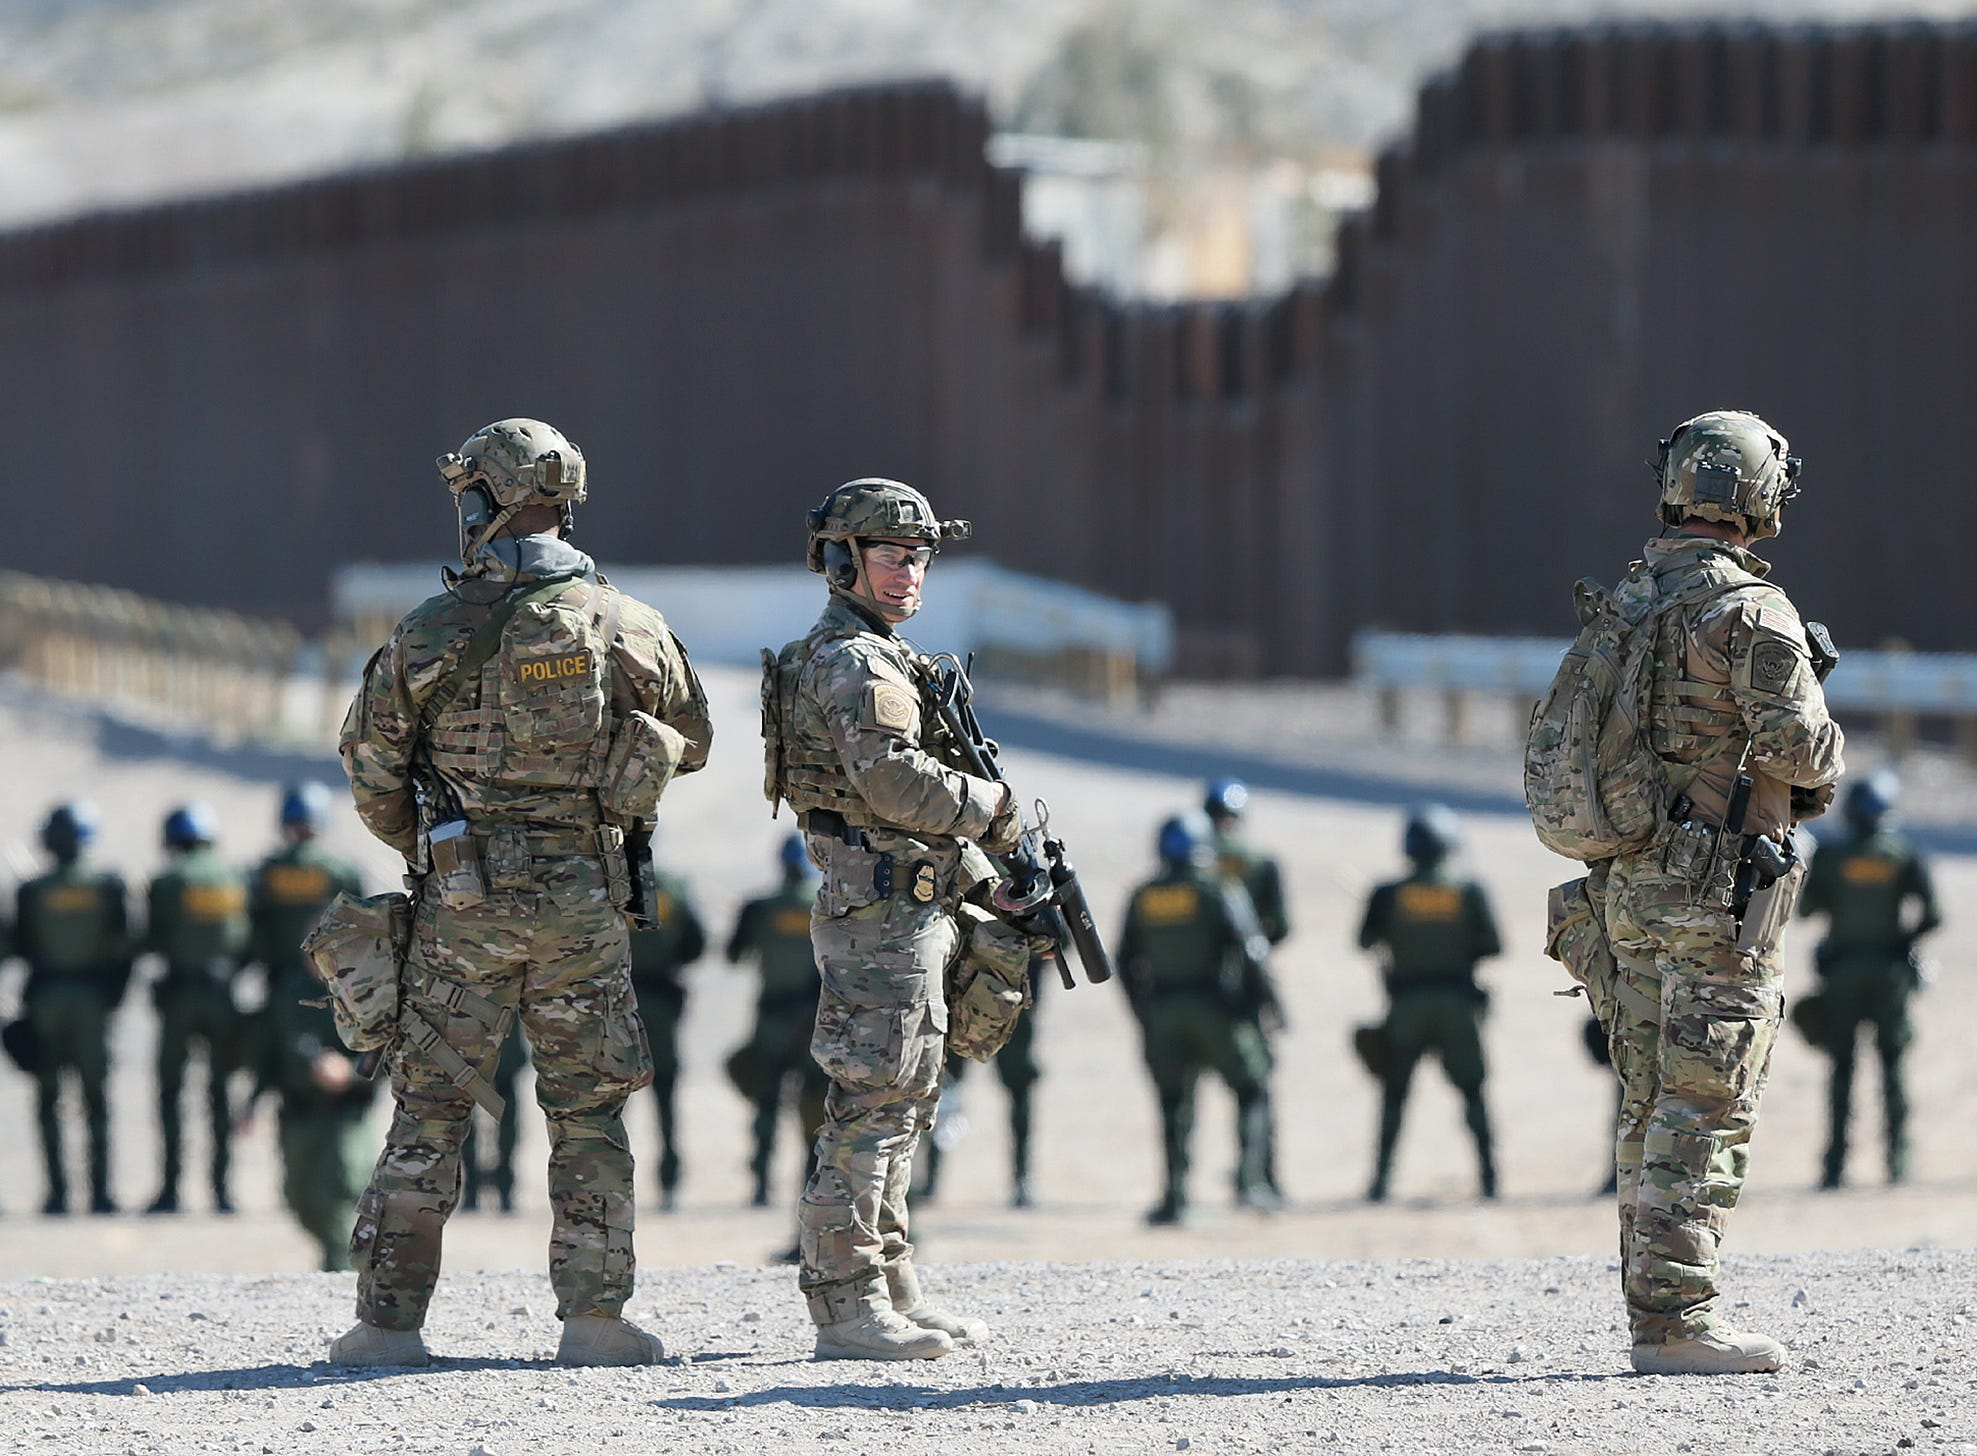 The U.S. Border Patrol along with ICE trained Thursday along the border fence in Anapra. The training is preparation for any border surge that may occur.